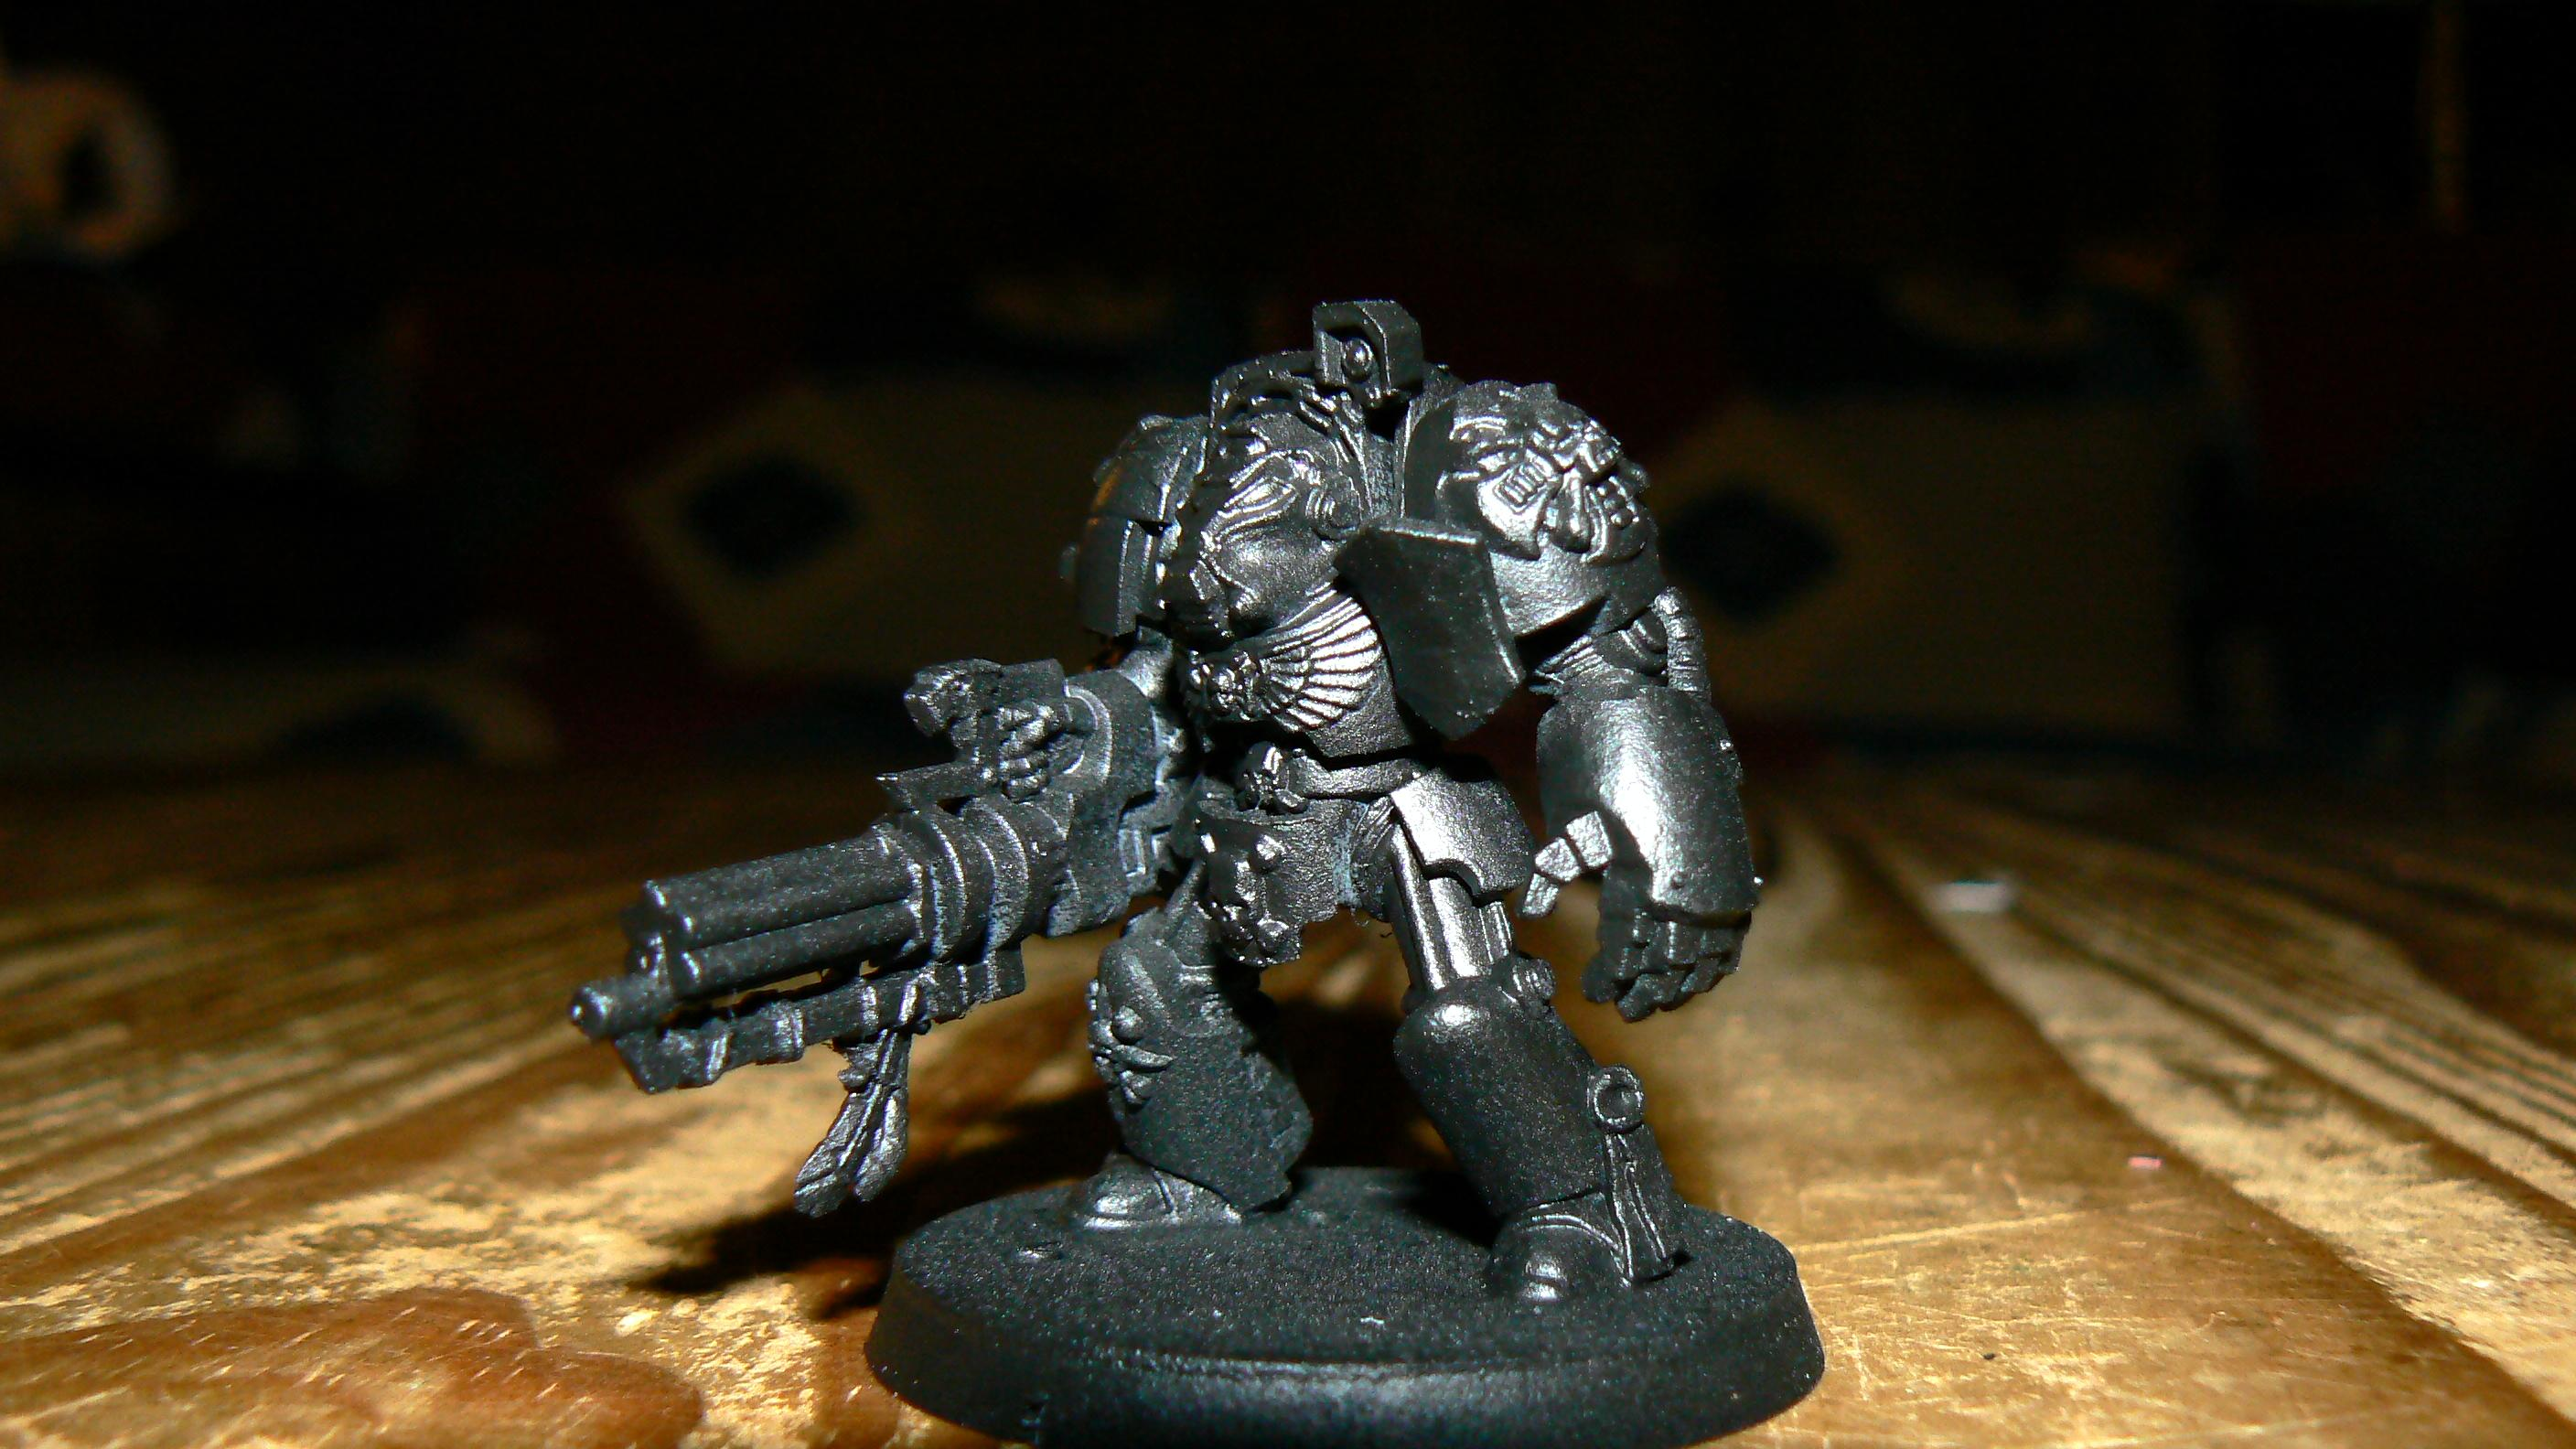 Assault Cannon, Dark Angels, Deathwing, Peacemakers, Penitent Avengers, Primered, Terminator Armor